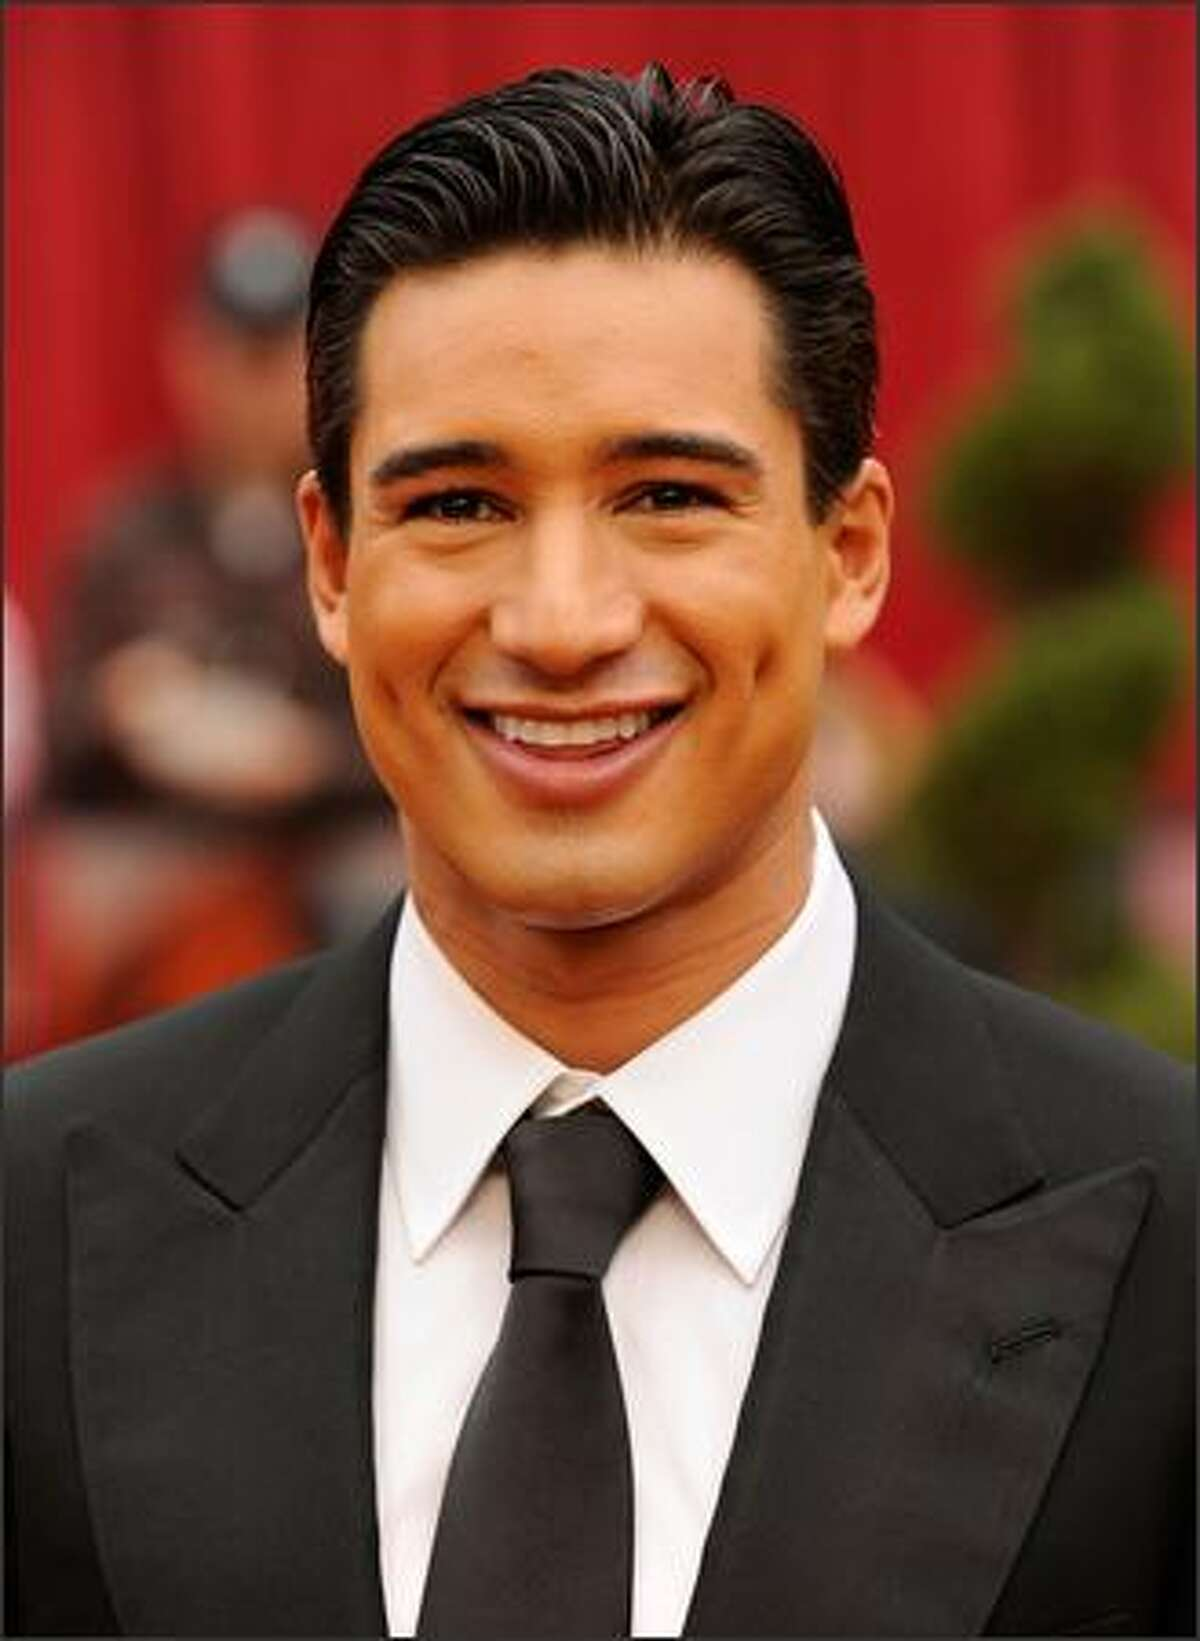 TV personality Mario Lopez arrives at the 81st Annual Academy Awards held at Kodak Theatre in Los Angeles, California.